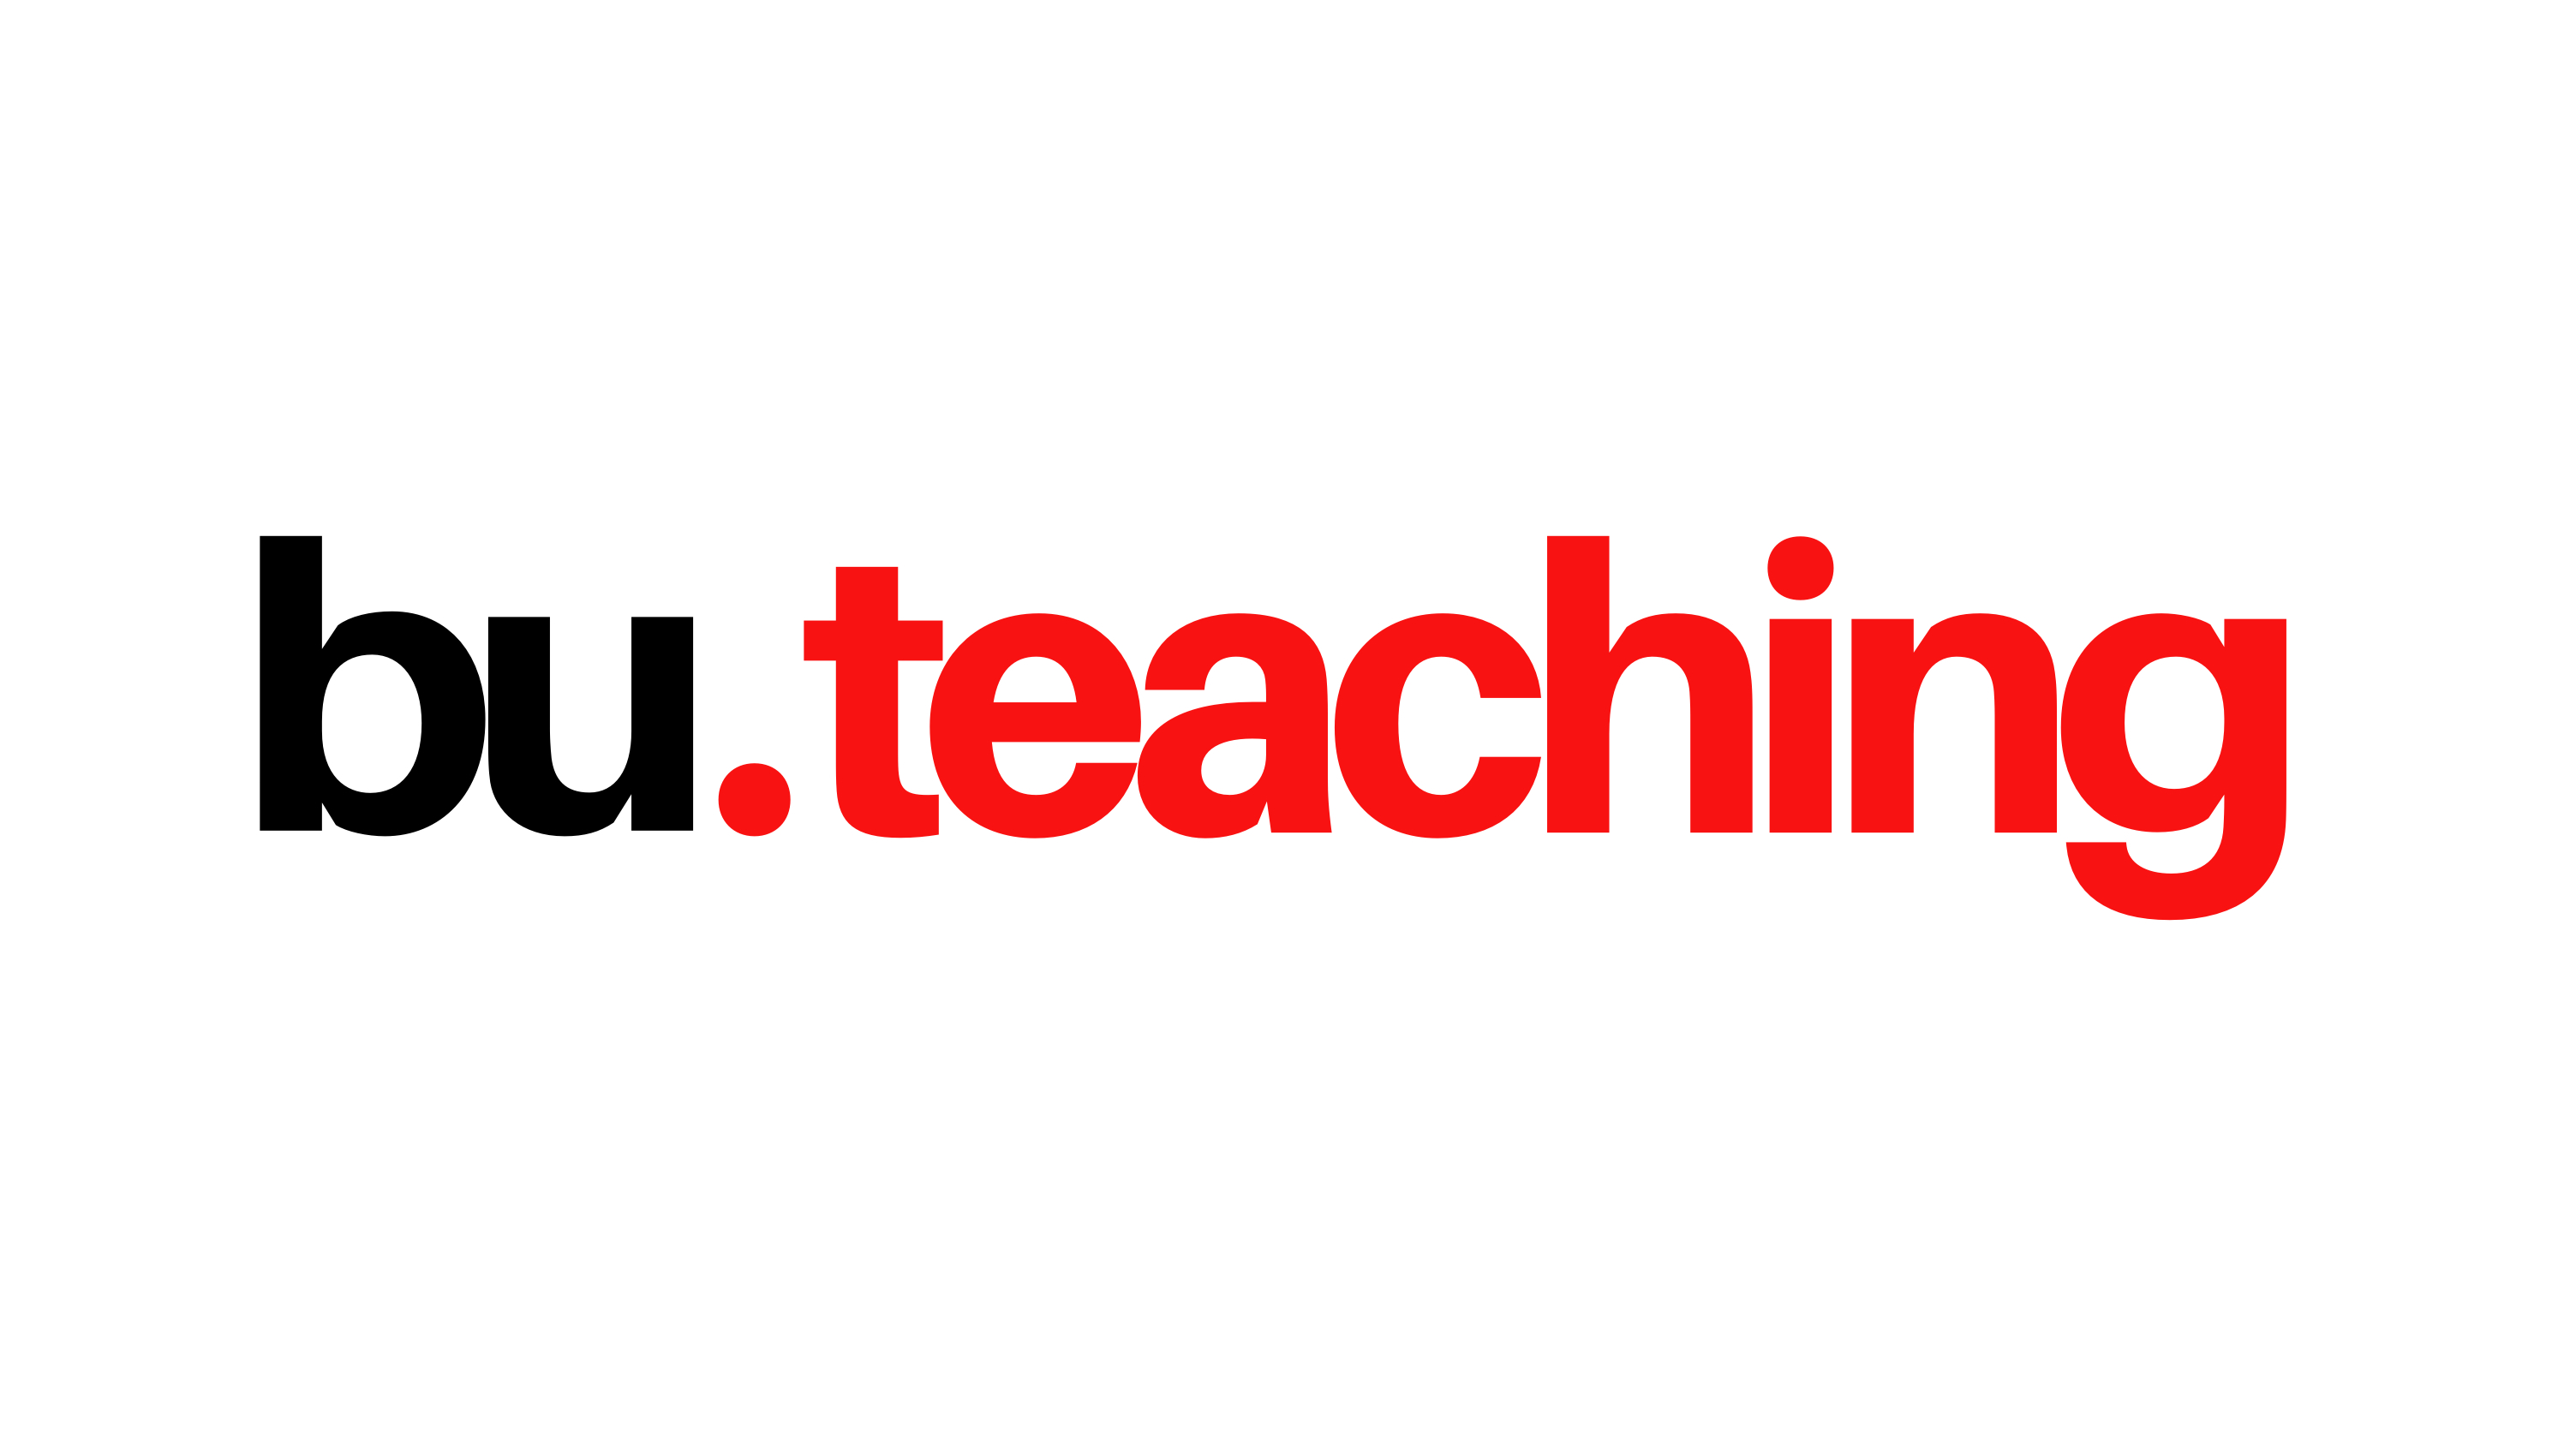 Breakthru Teaching